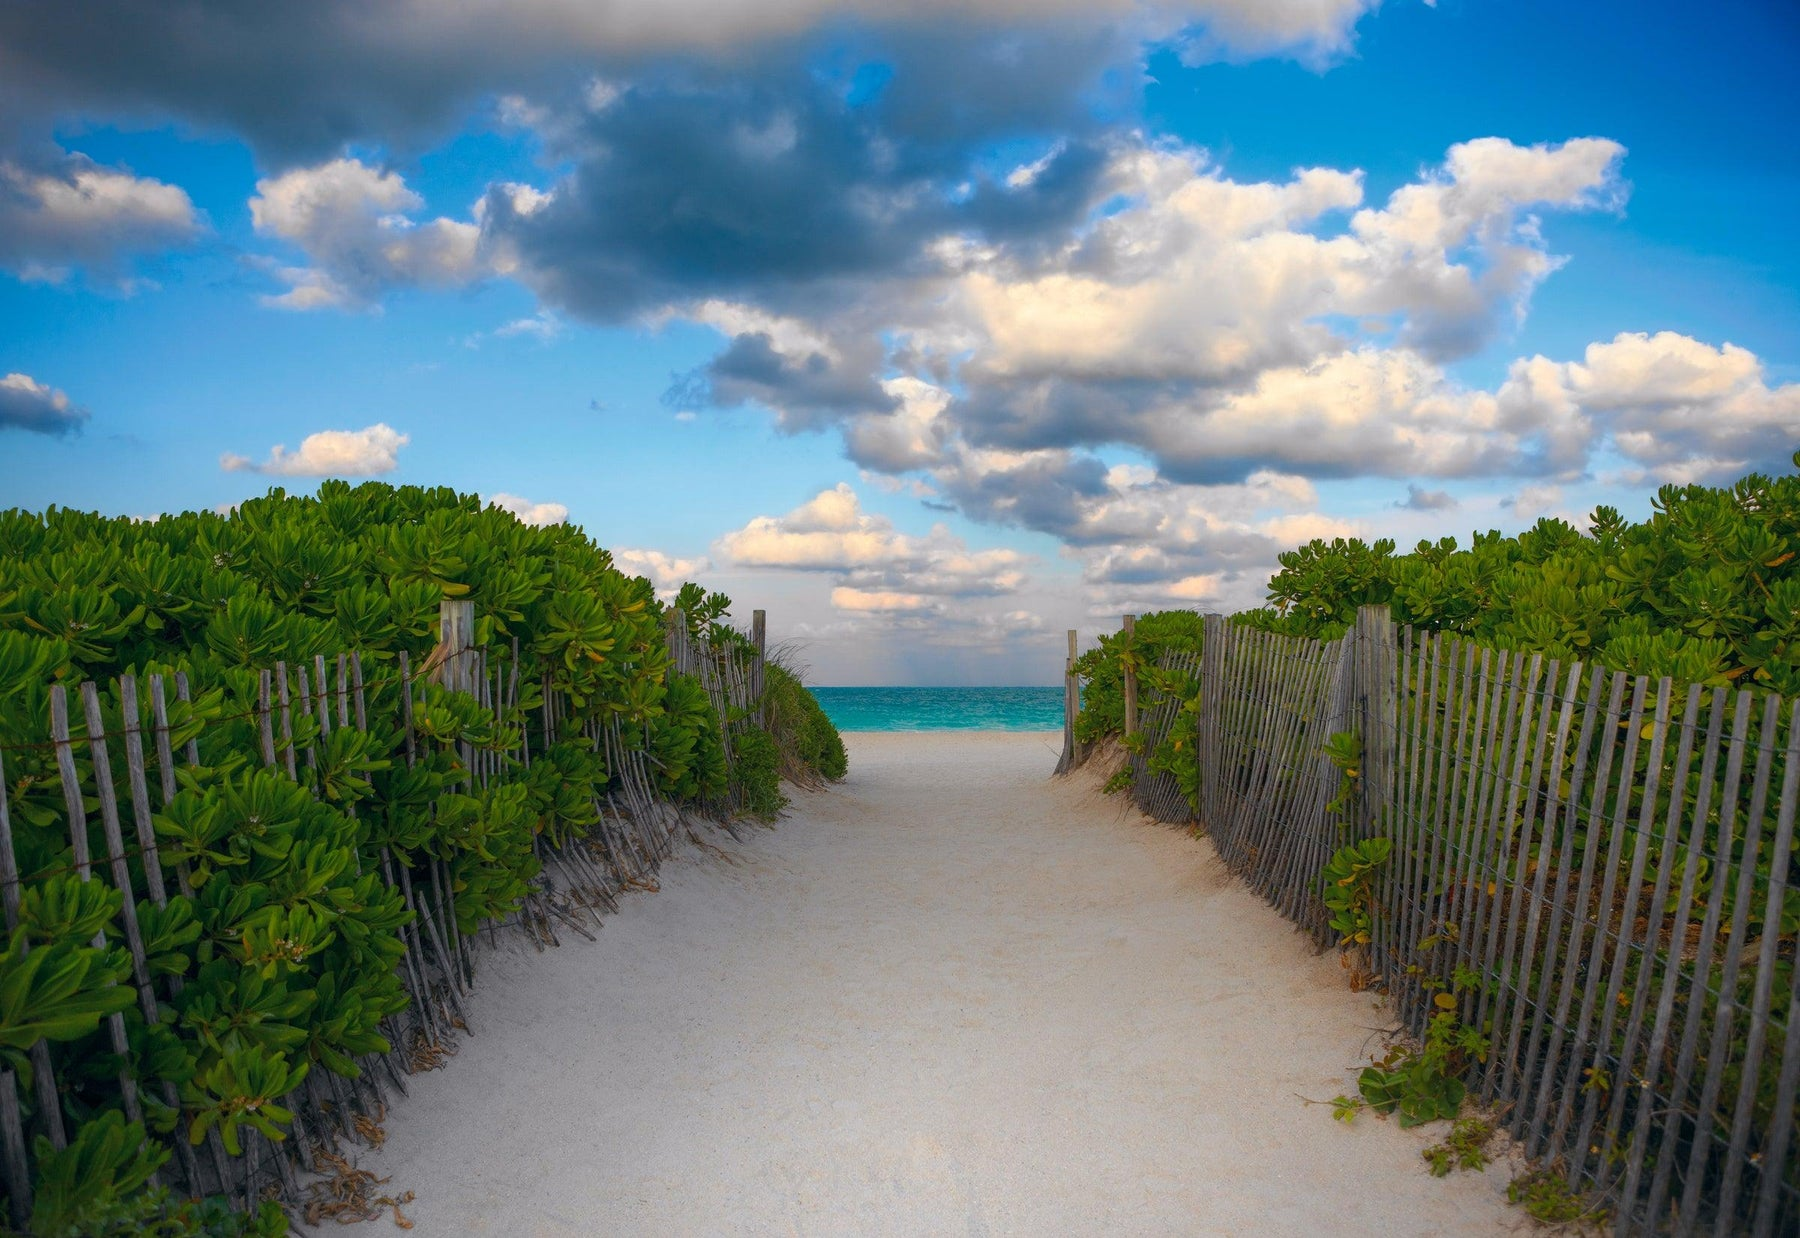 Sand pathway with picket fences and green foliage leading to a beach in Miami Beach Florida